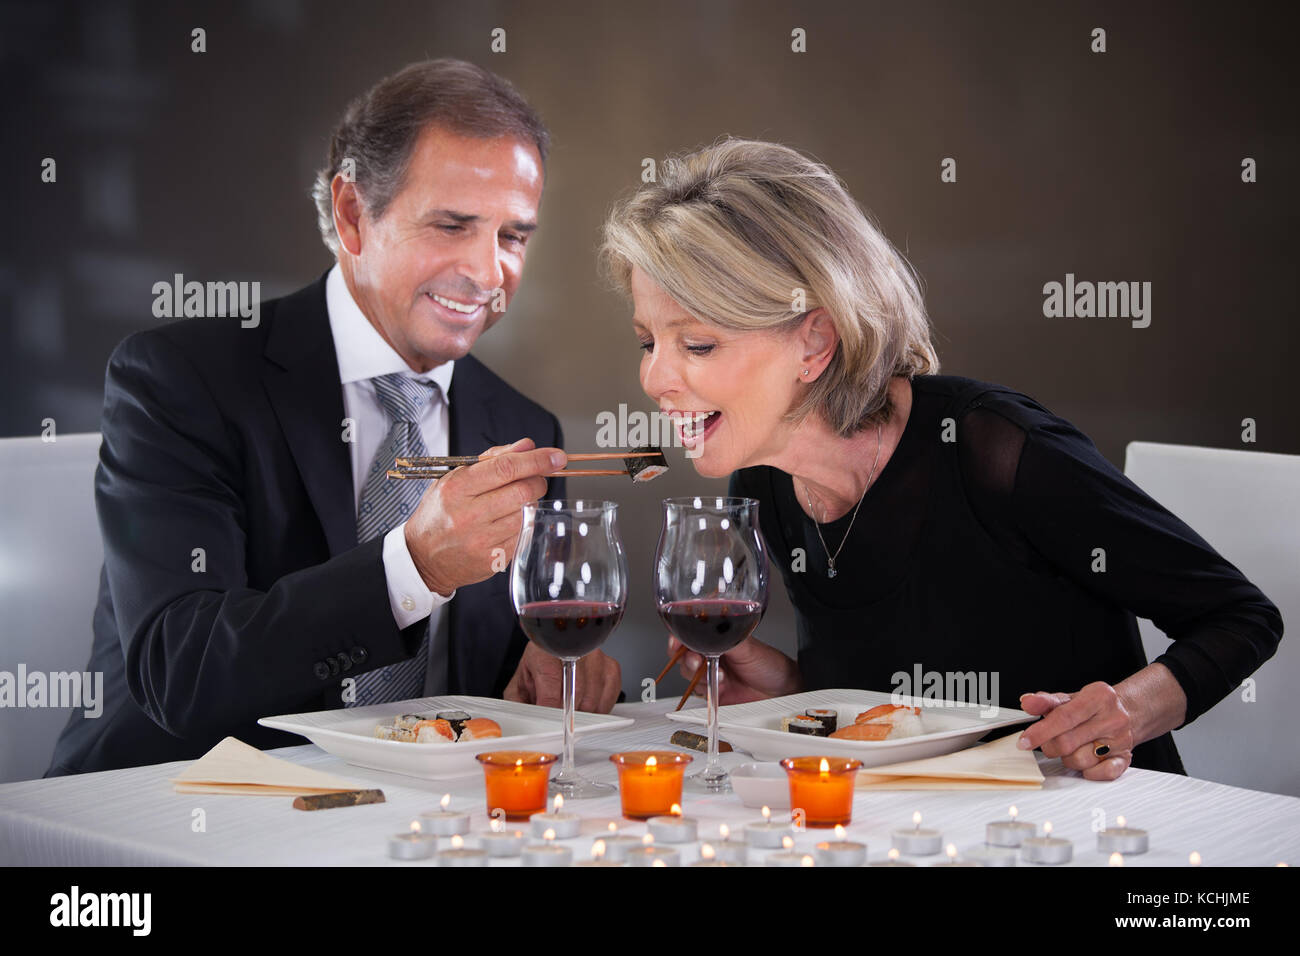 Couple romantique en train de dîner au restaurant Photo Stock